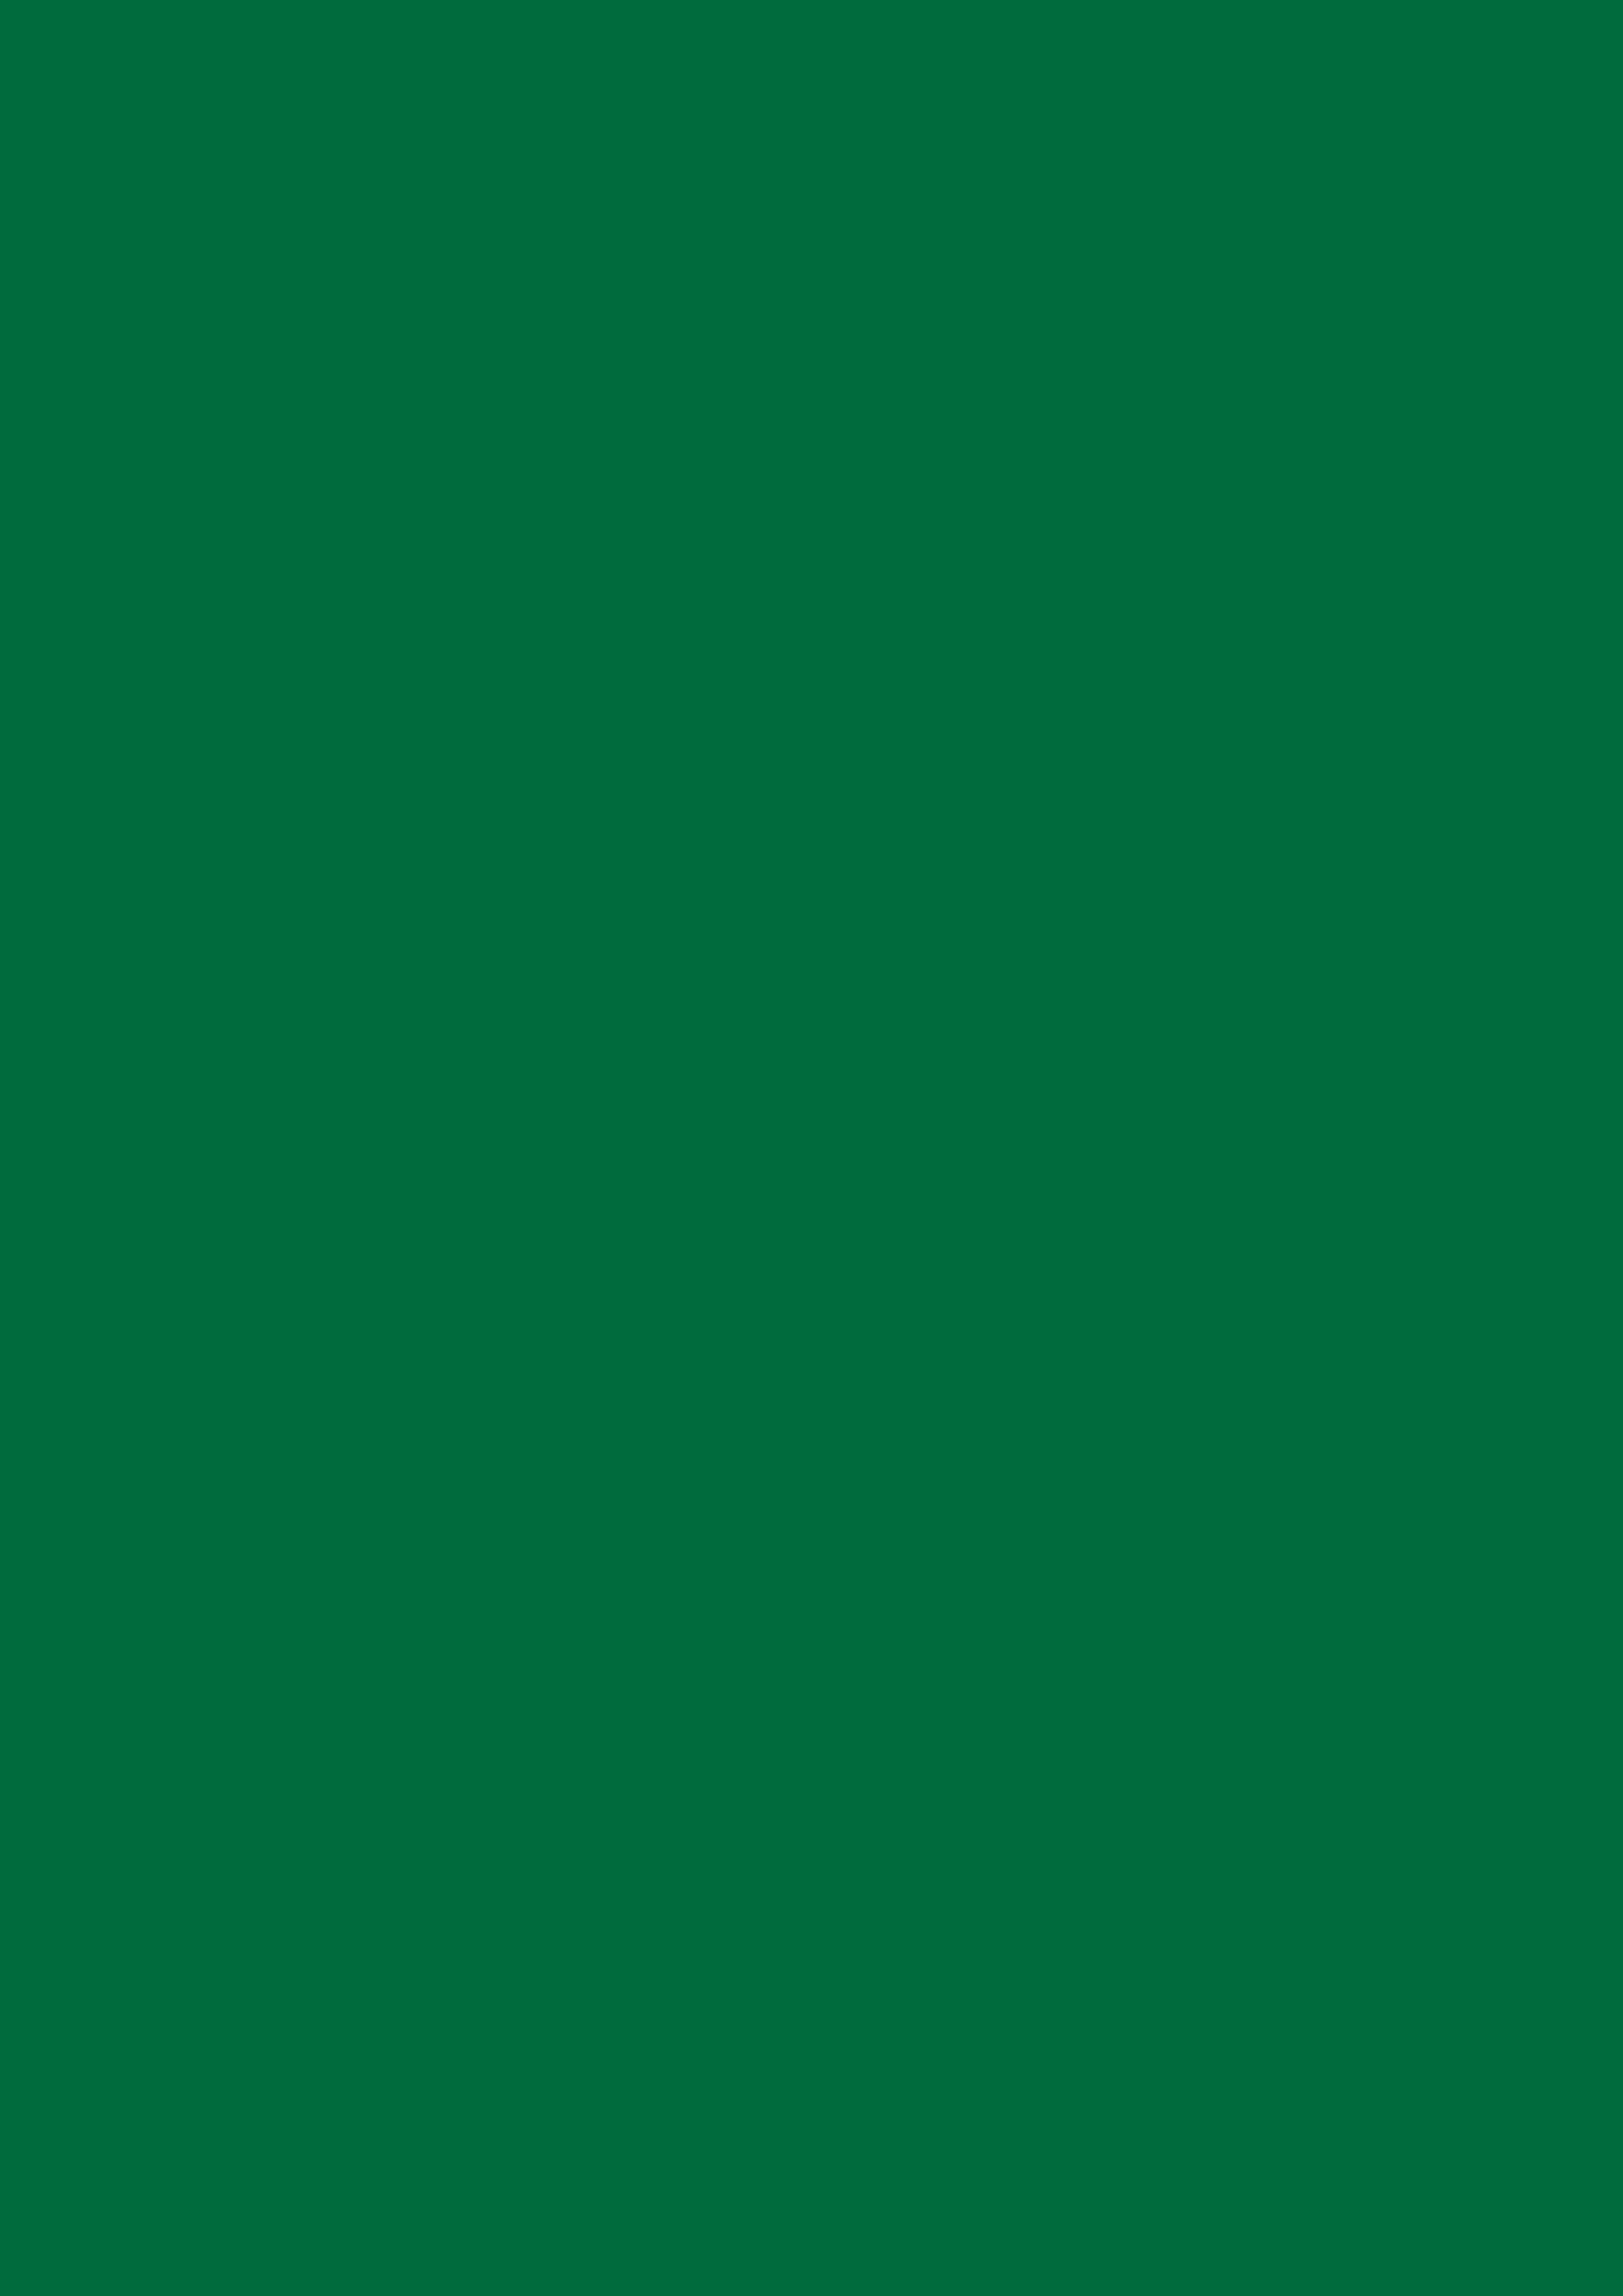 2480x3508 Cadmium Green Solid Color Background